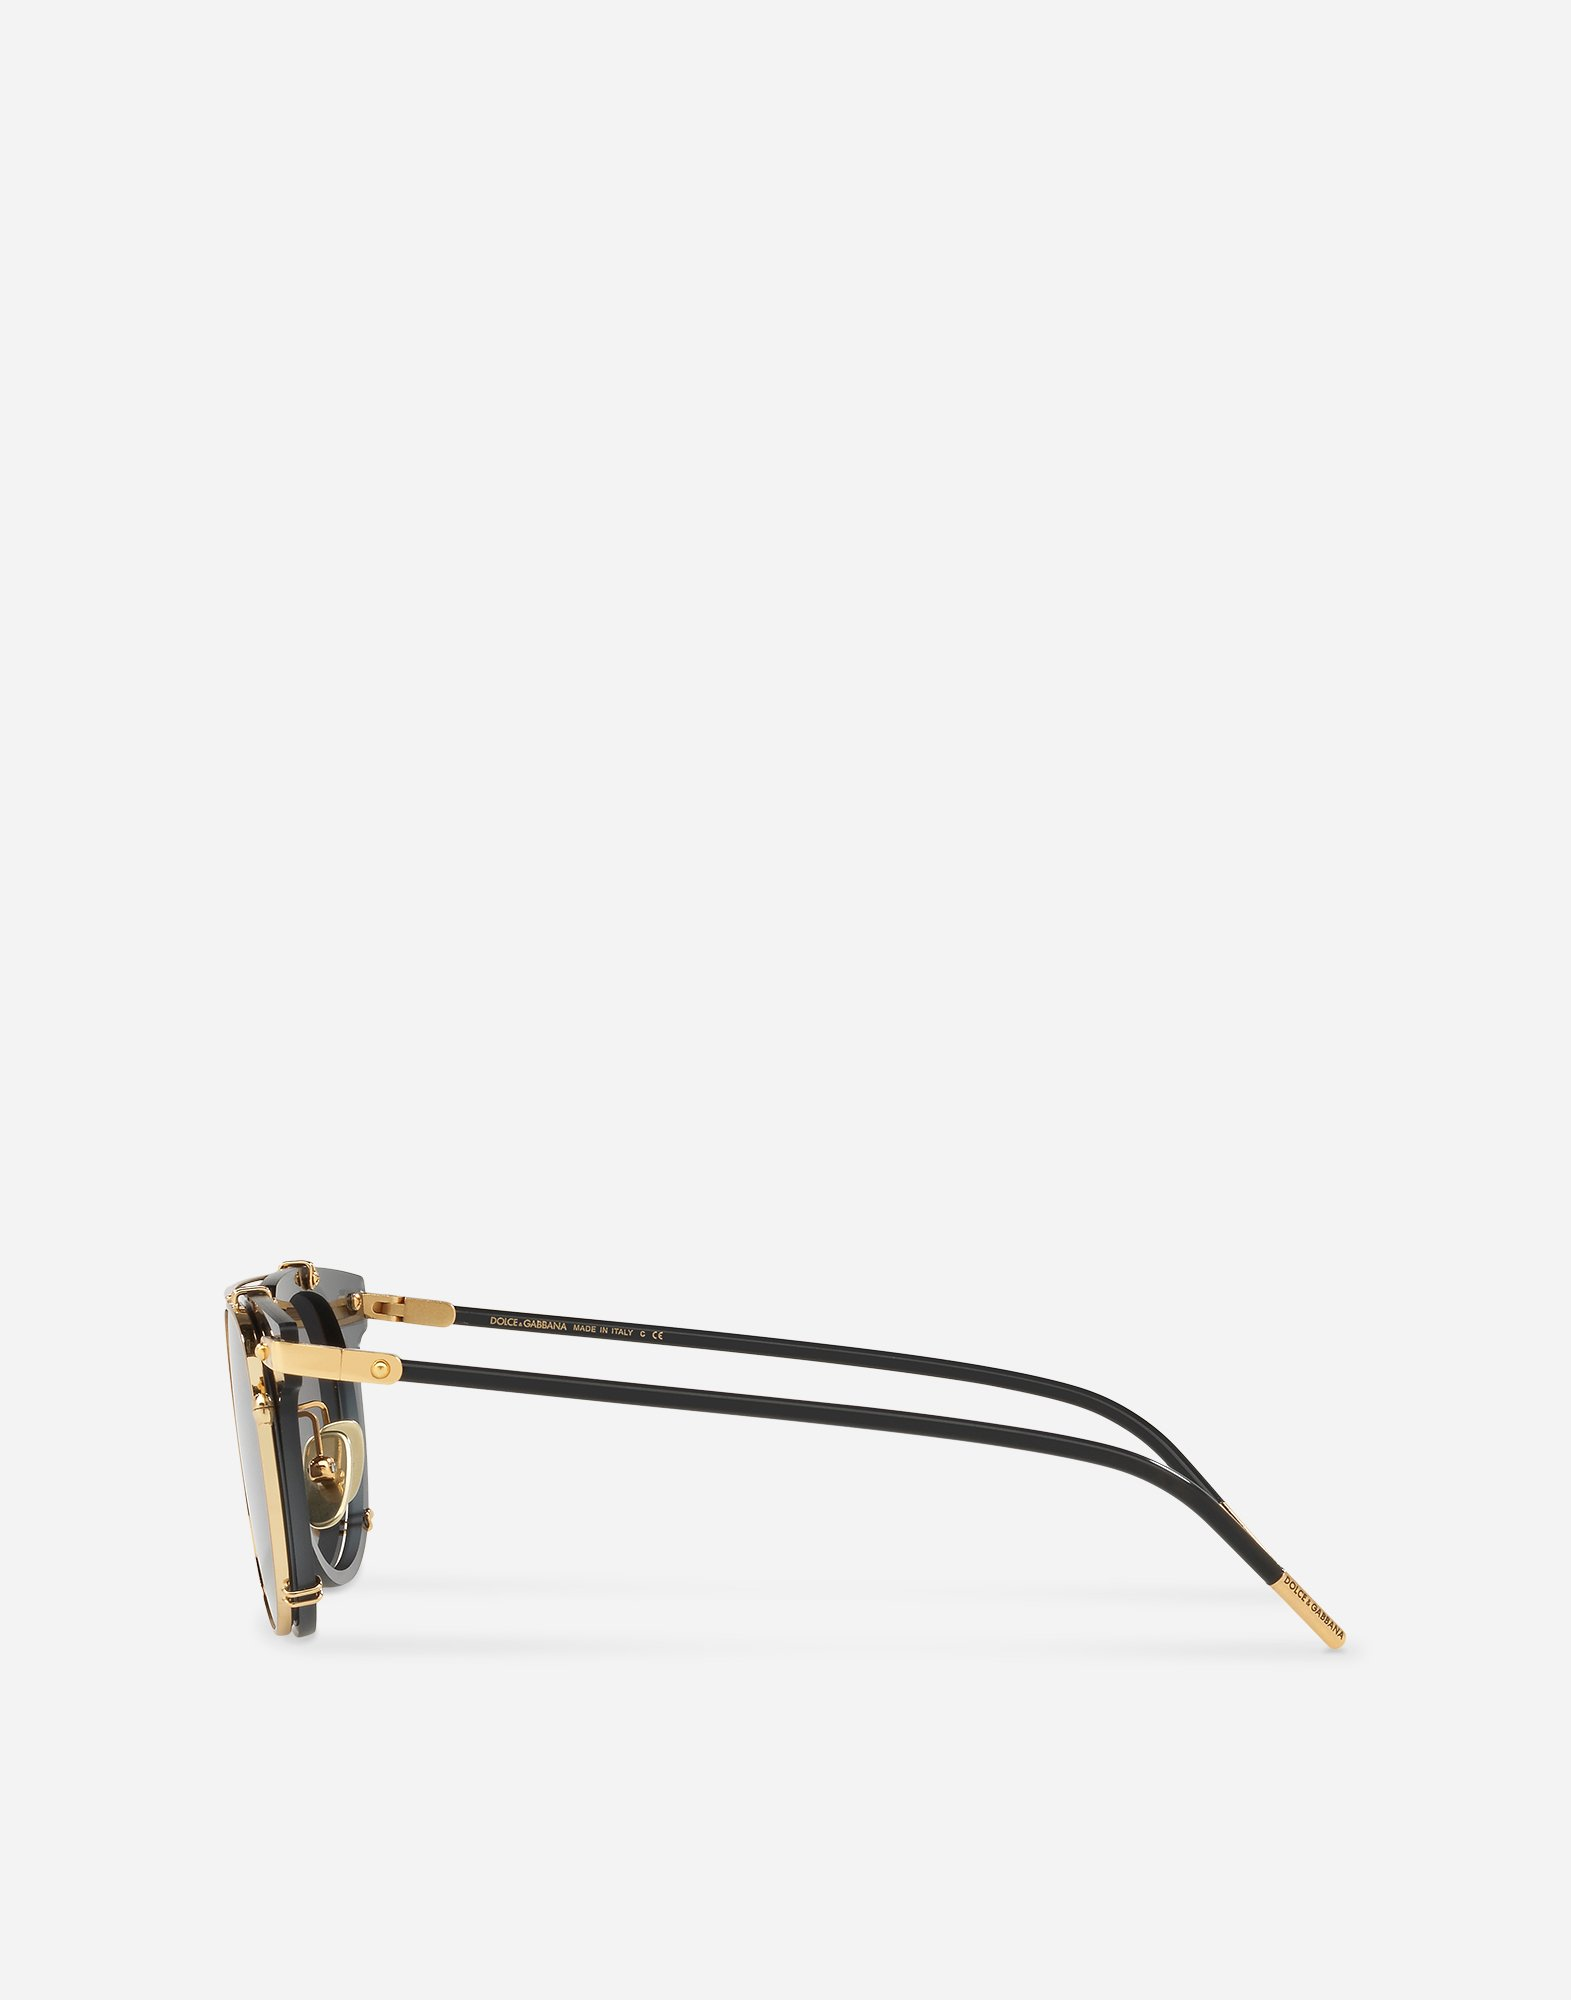 Dolce&Gabbana PANTHOS SUNGLASSES WITH METAL FRAME